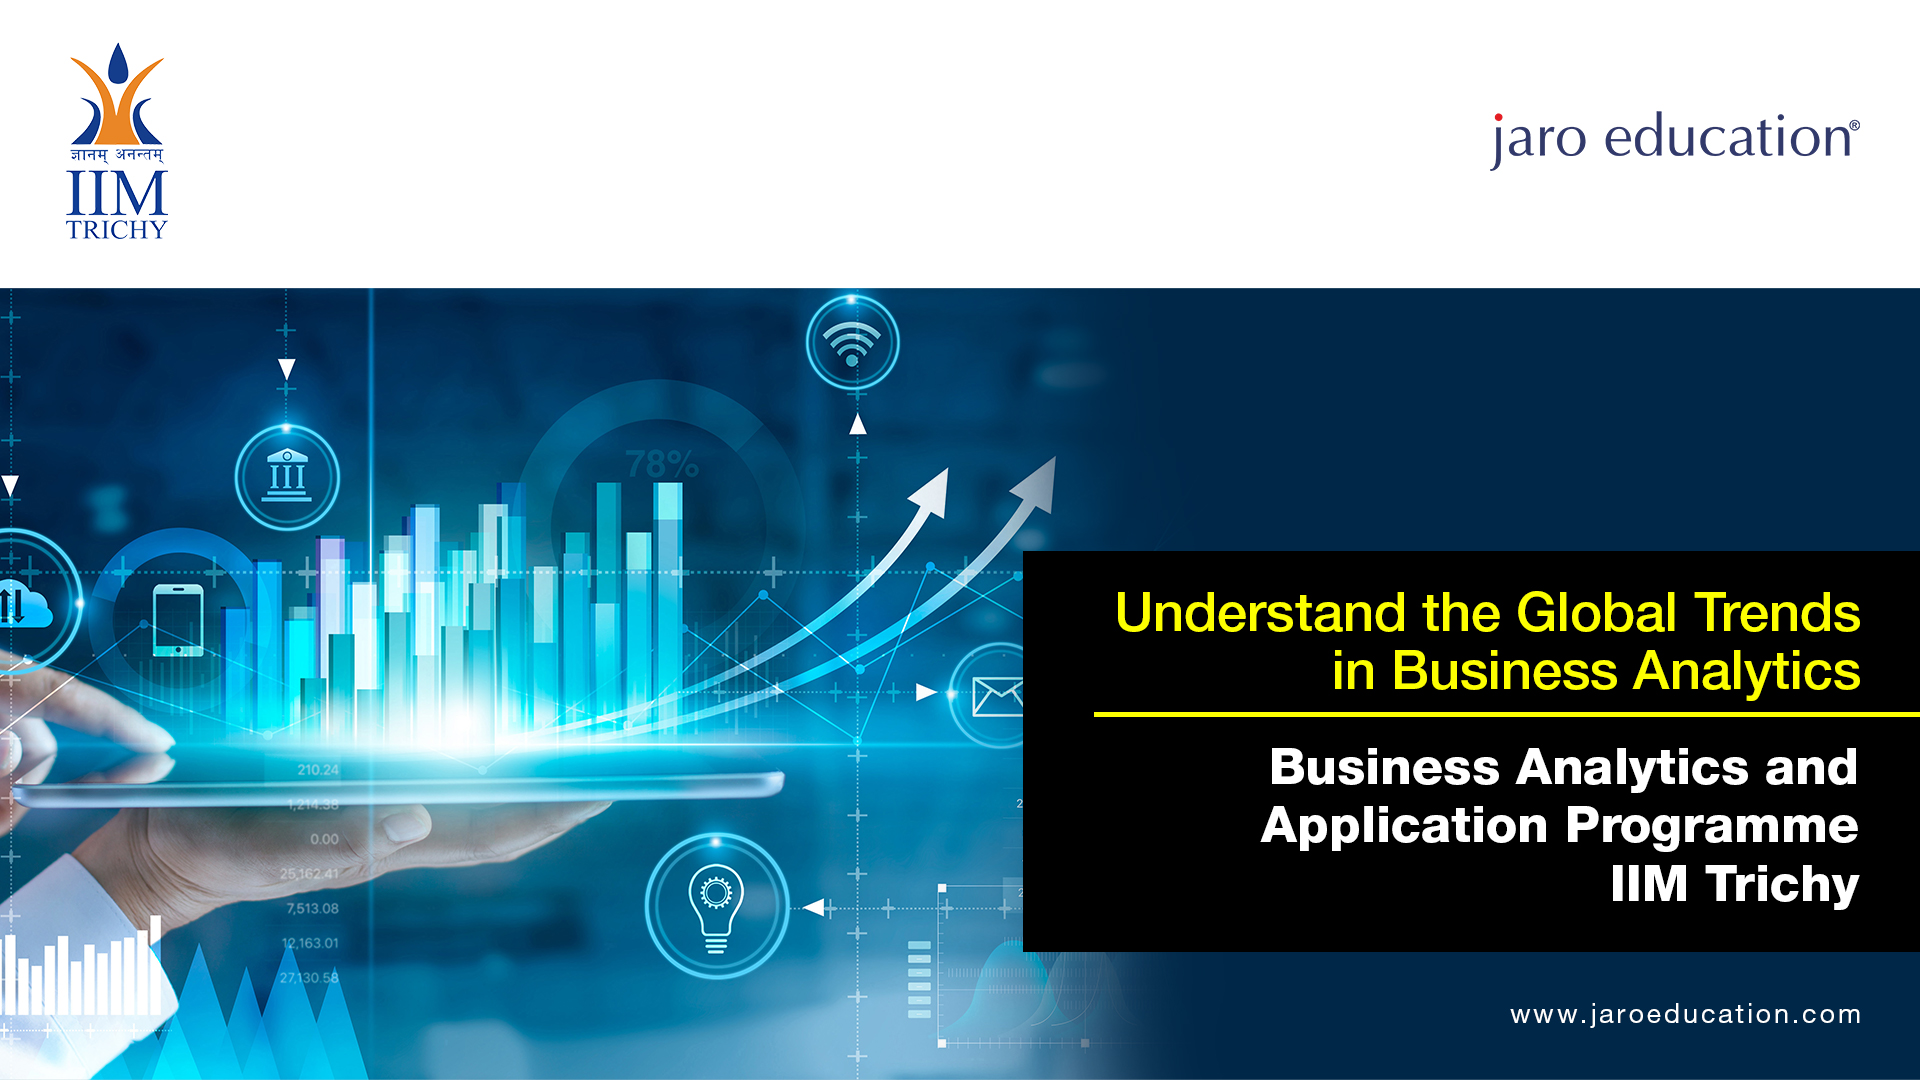 Global Trends in Business Analytics